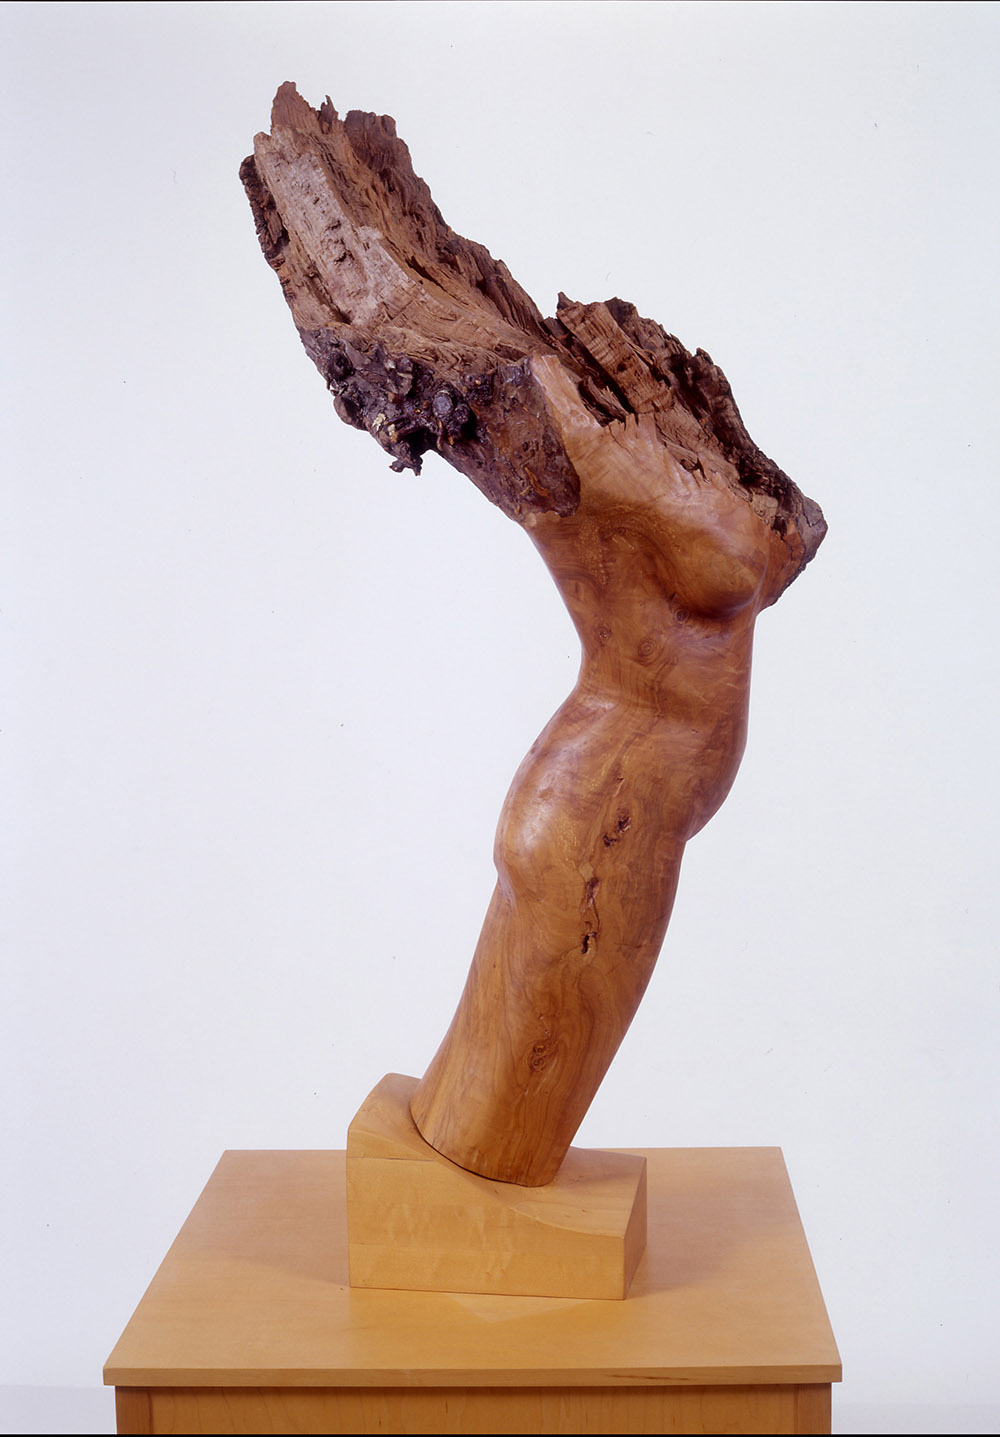 16.d-Ono-Victory-1996.-Apple-wood-129.5-x-68.6-x-35.6-cm-x.jpg